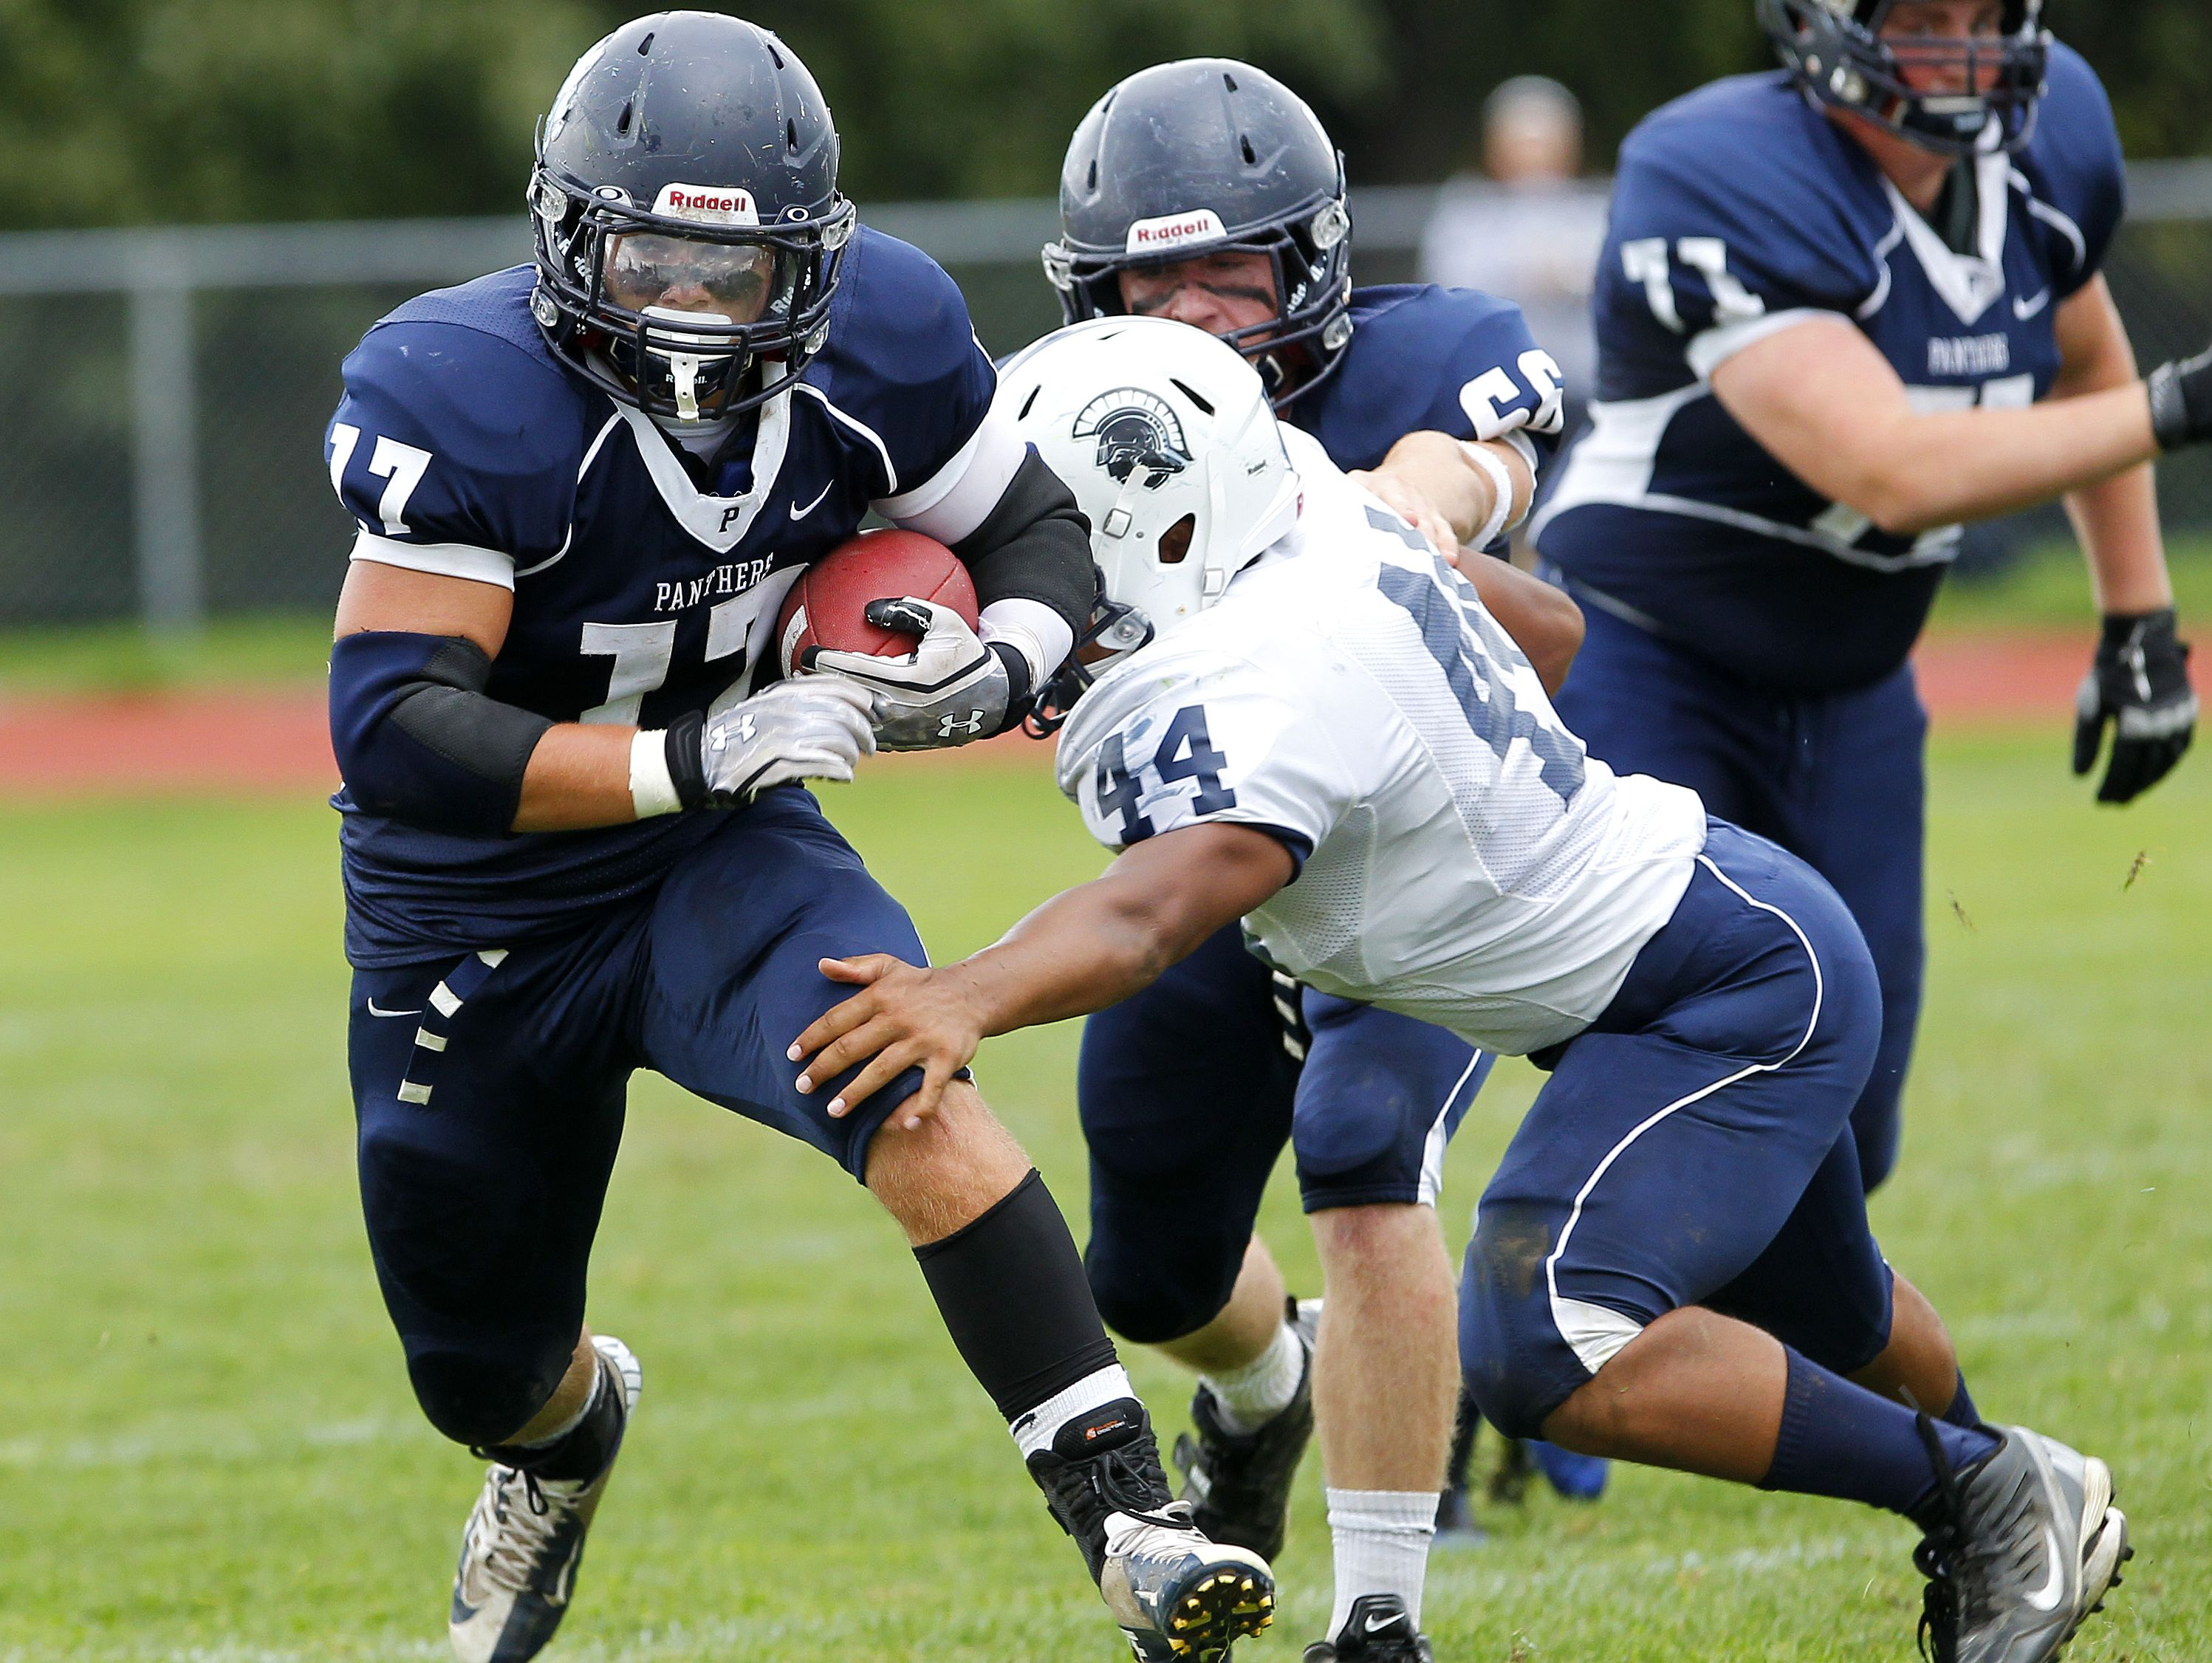 Pittsford's Glynn Molinich, left, rushed for a career-best 172 yards in a game against Gates Chili in 2015.